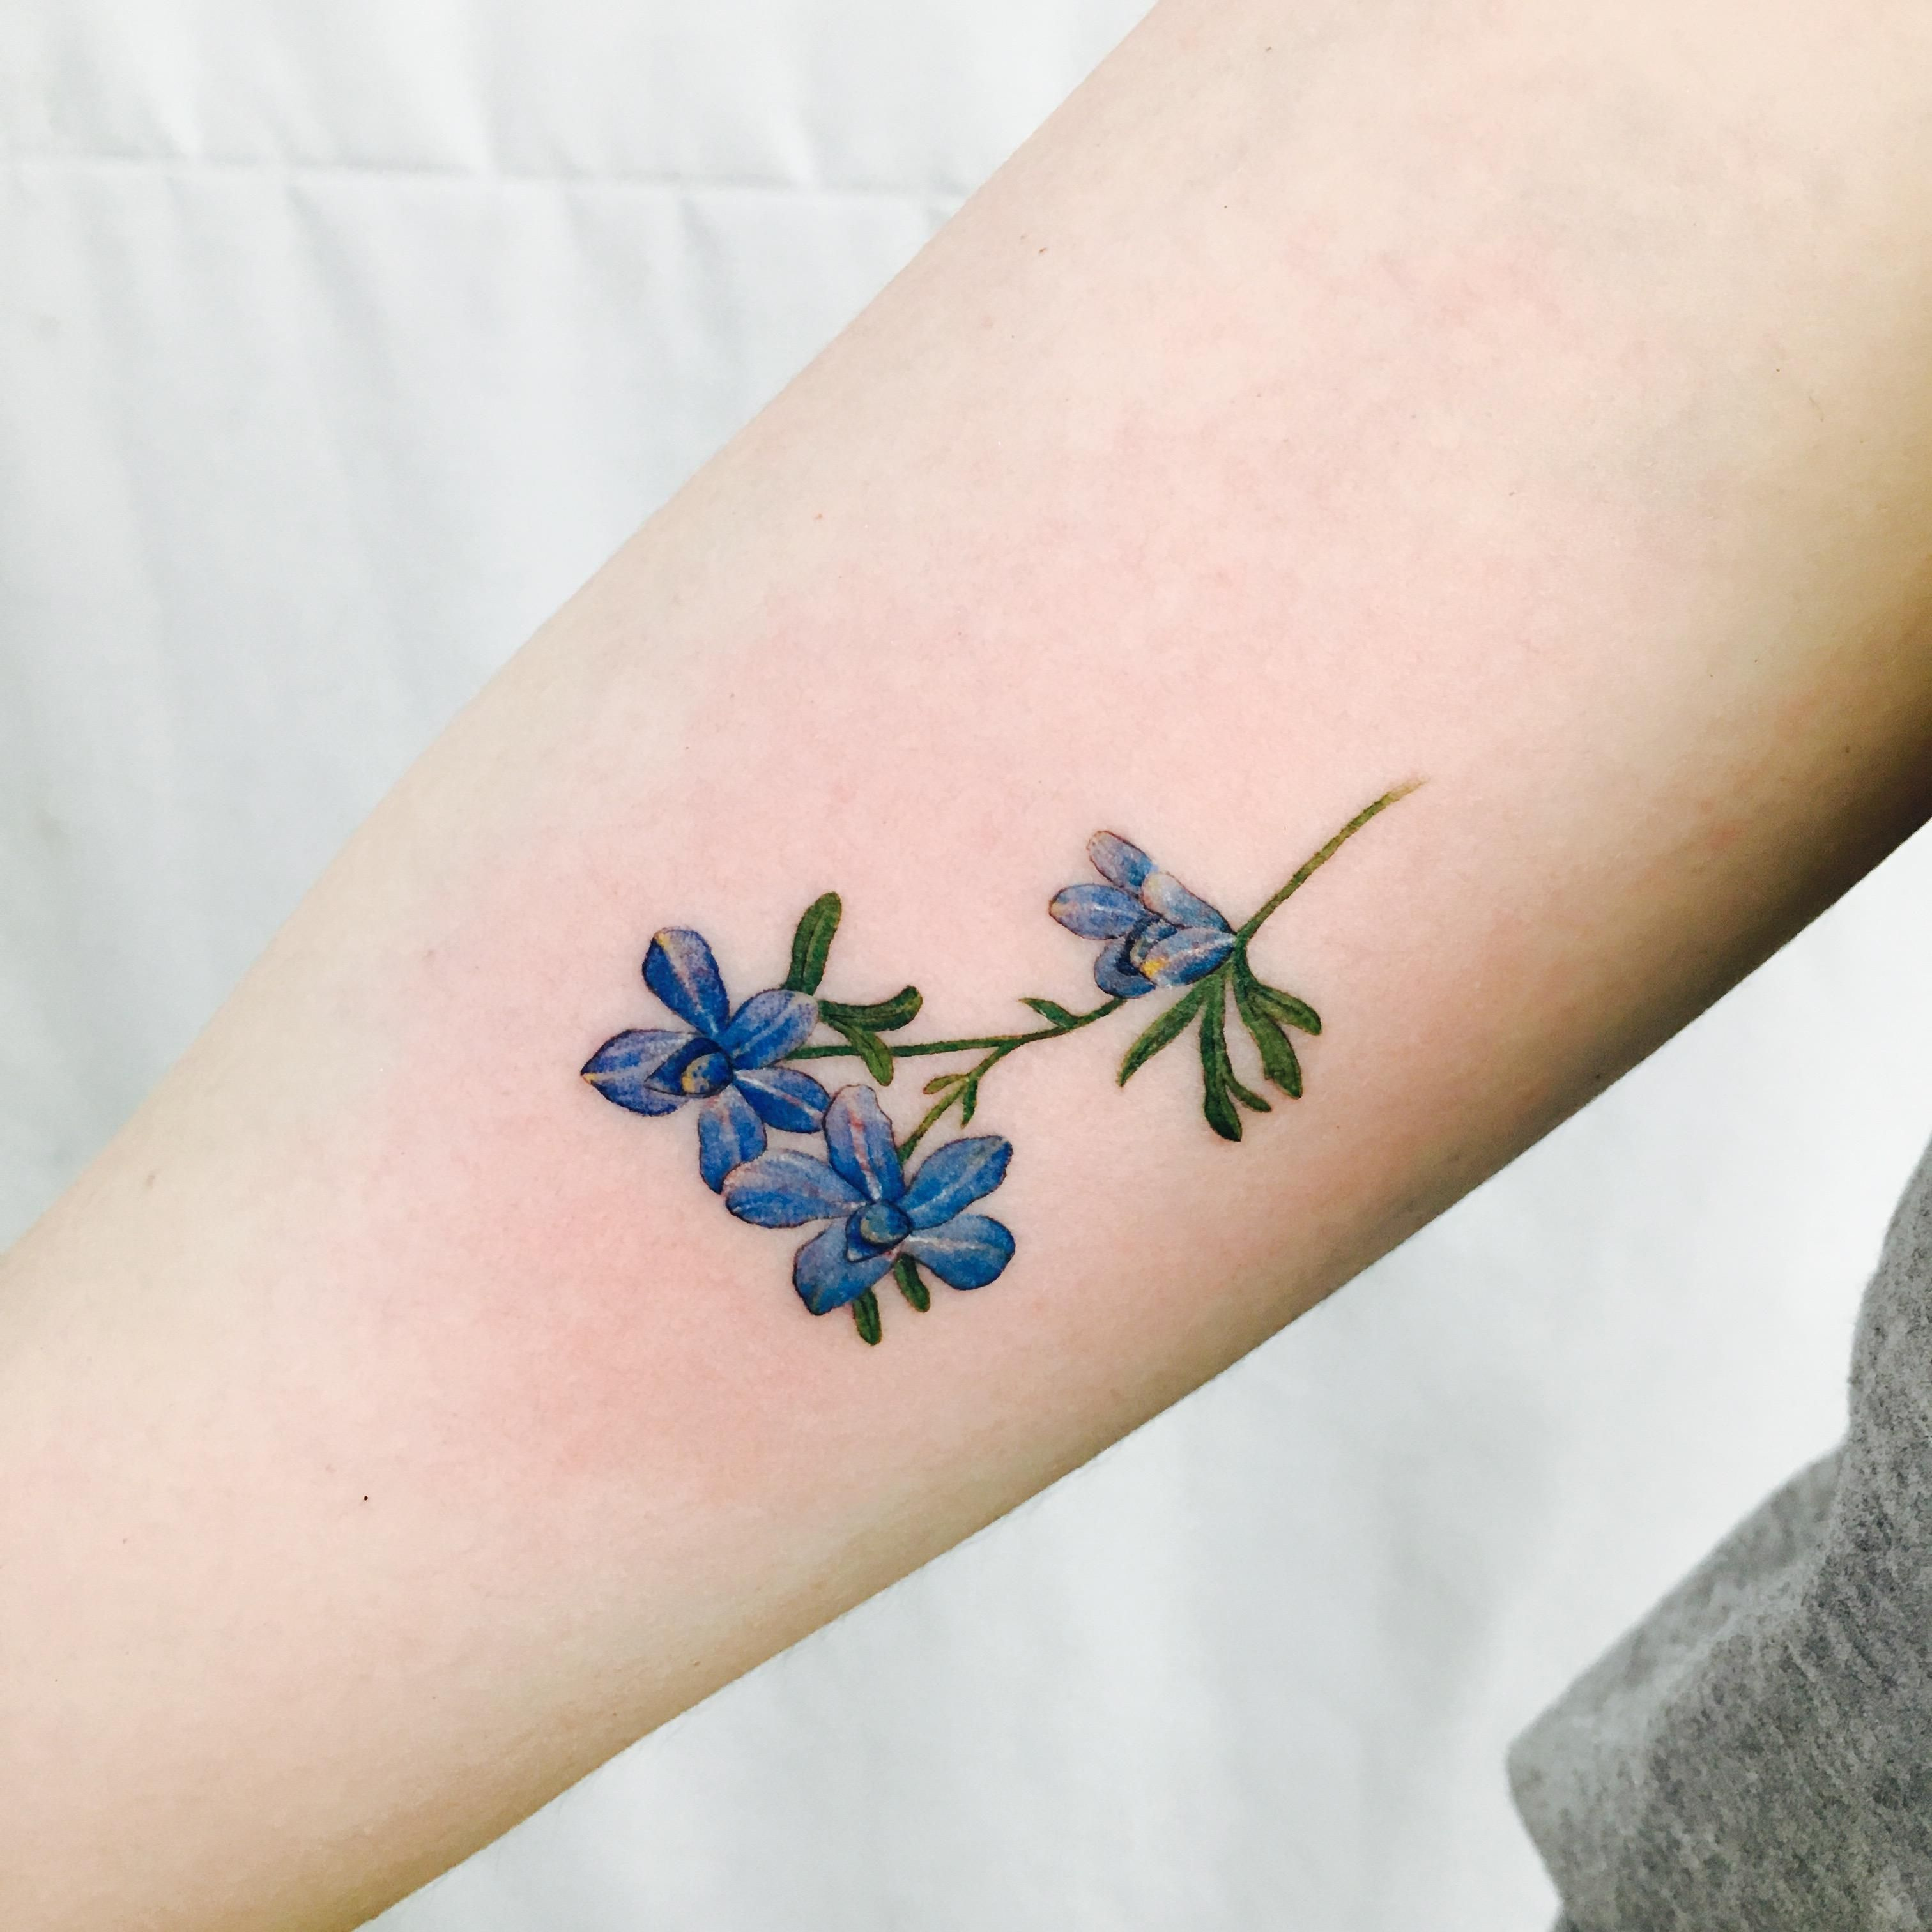 Reasons Why It's Awesome to Get a Tattoo Larkspur tattoo